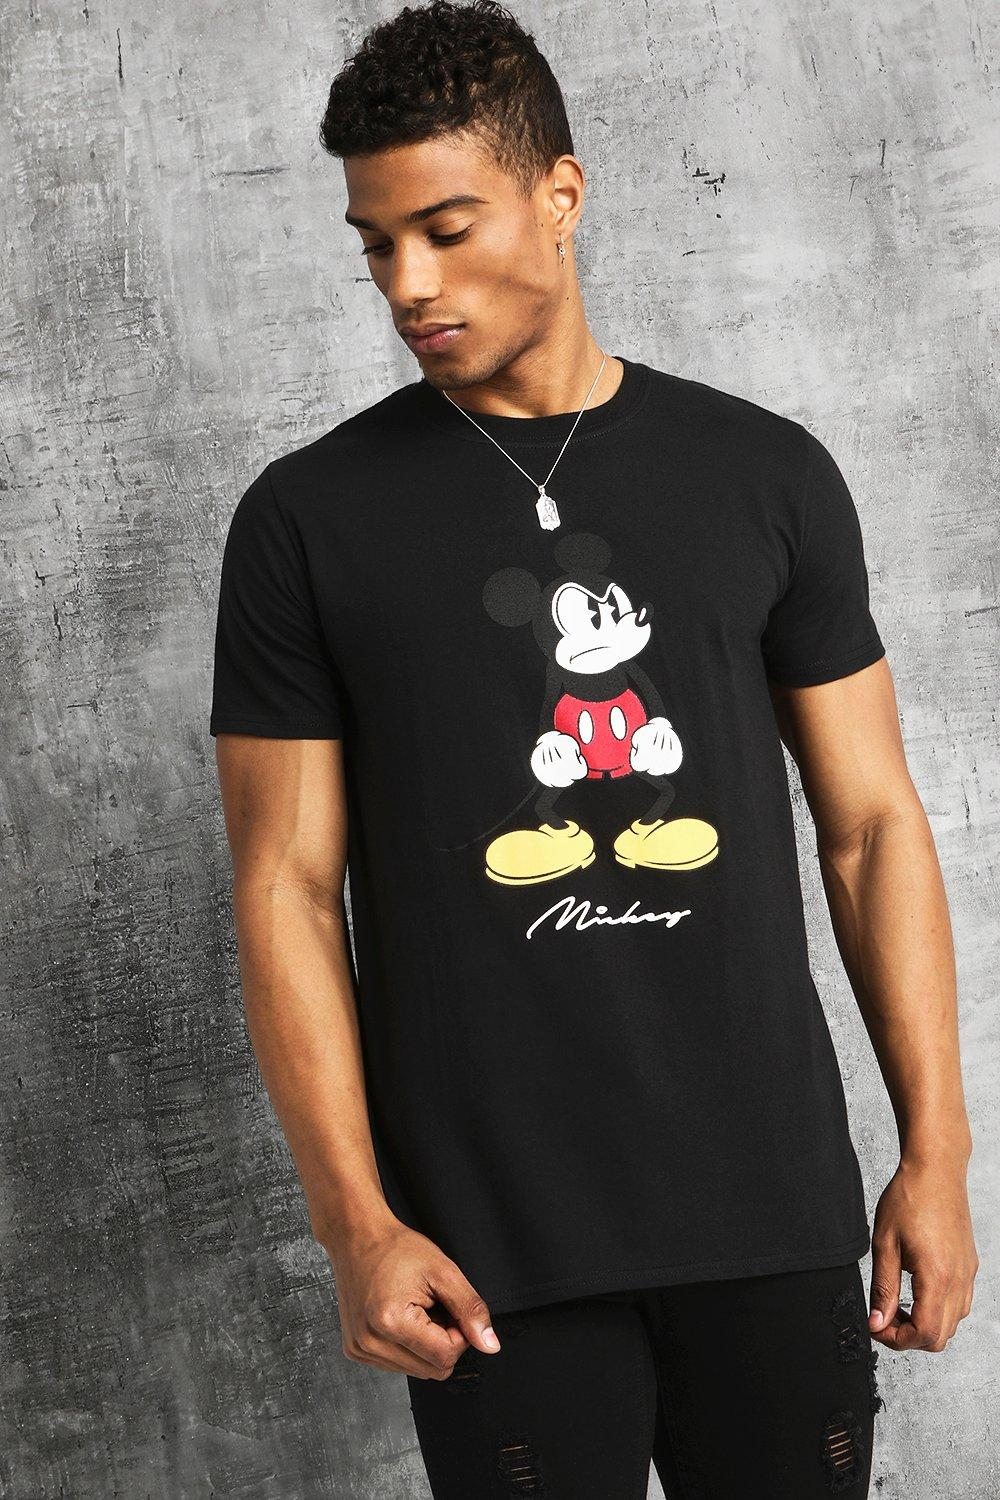 Is Disney taking the Mickey with this T shirt? | Fashion